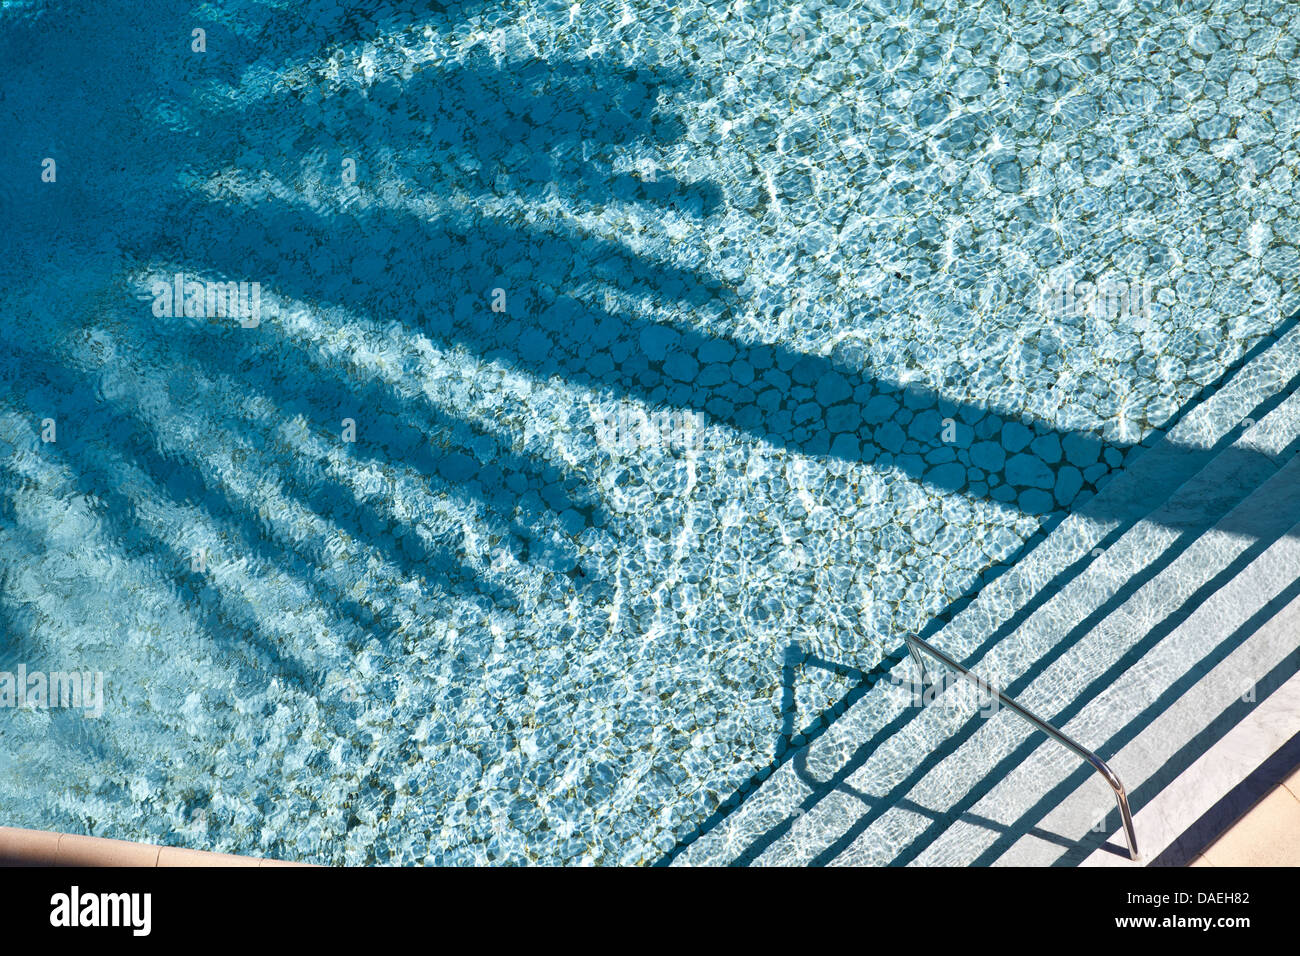 Swimming pool with palm tree shadow in pool. - Stock Image